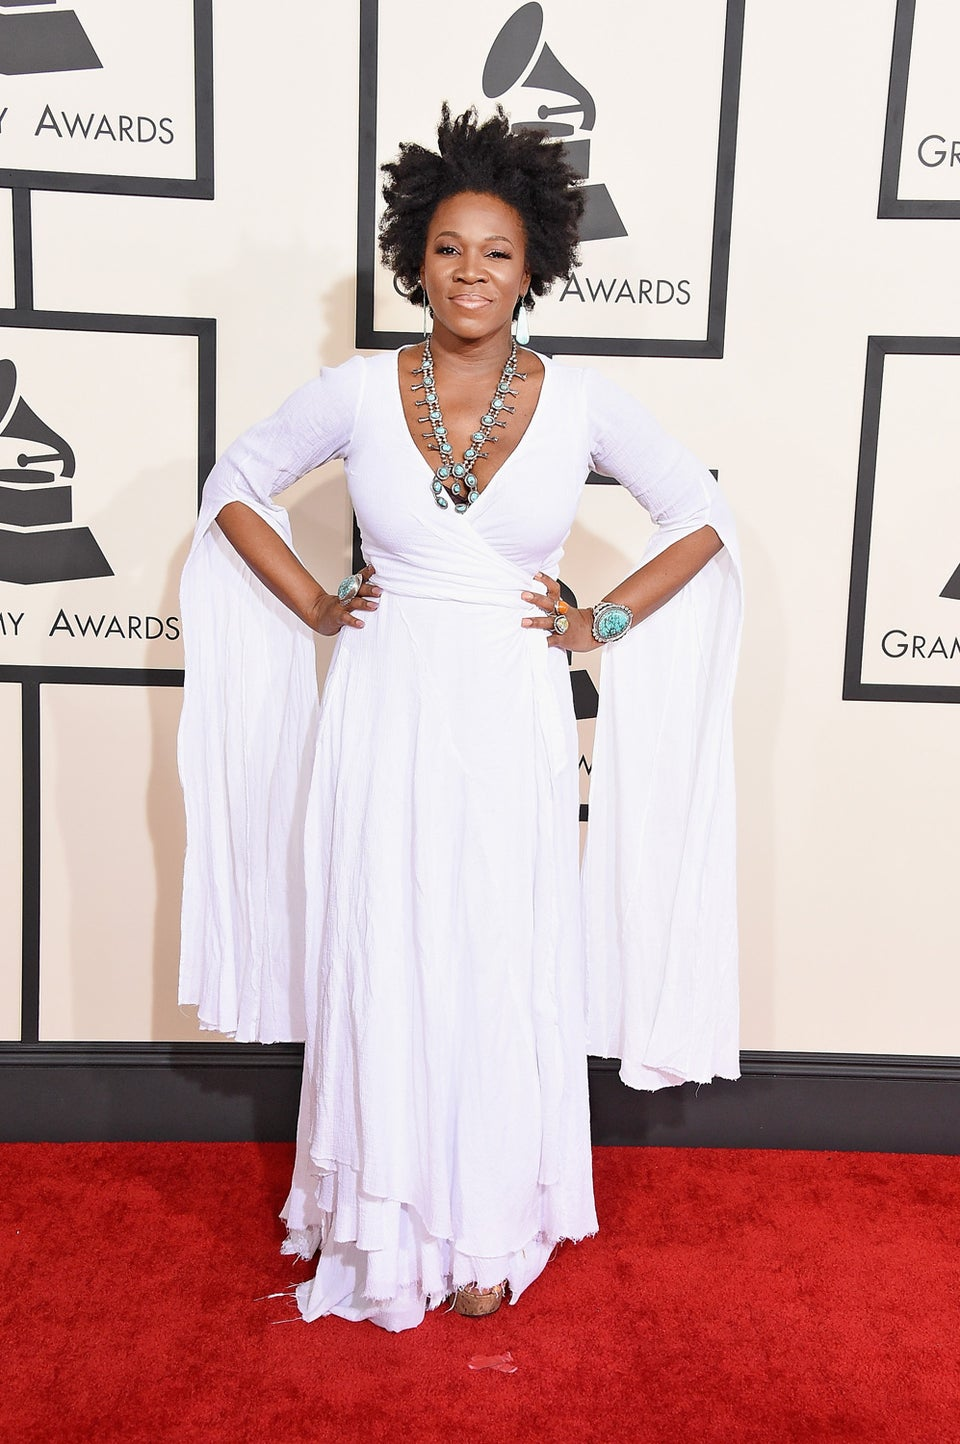 India.Arie To Make Appearance on Tonight's Episode of Being Mary Jane